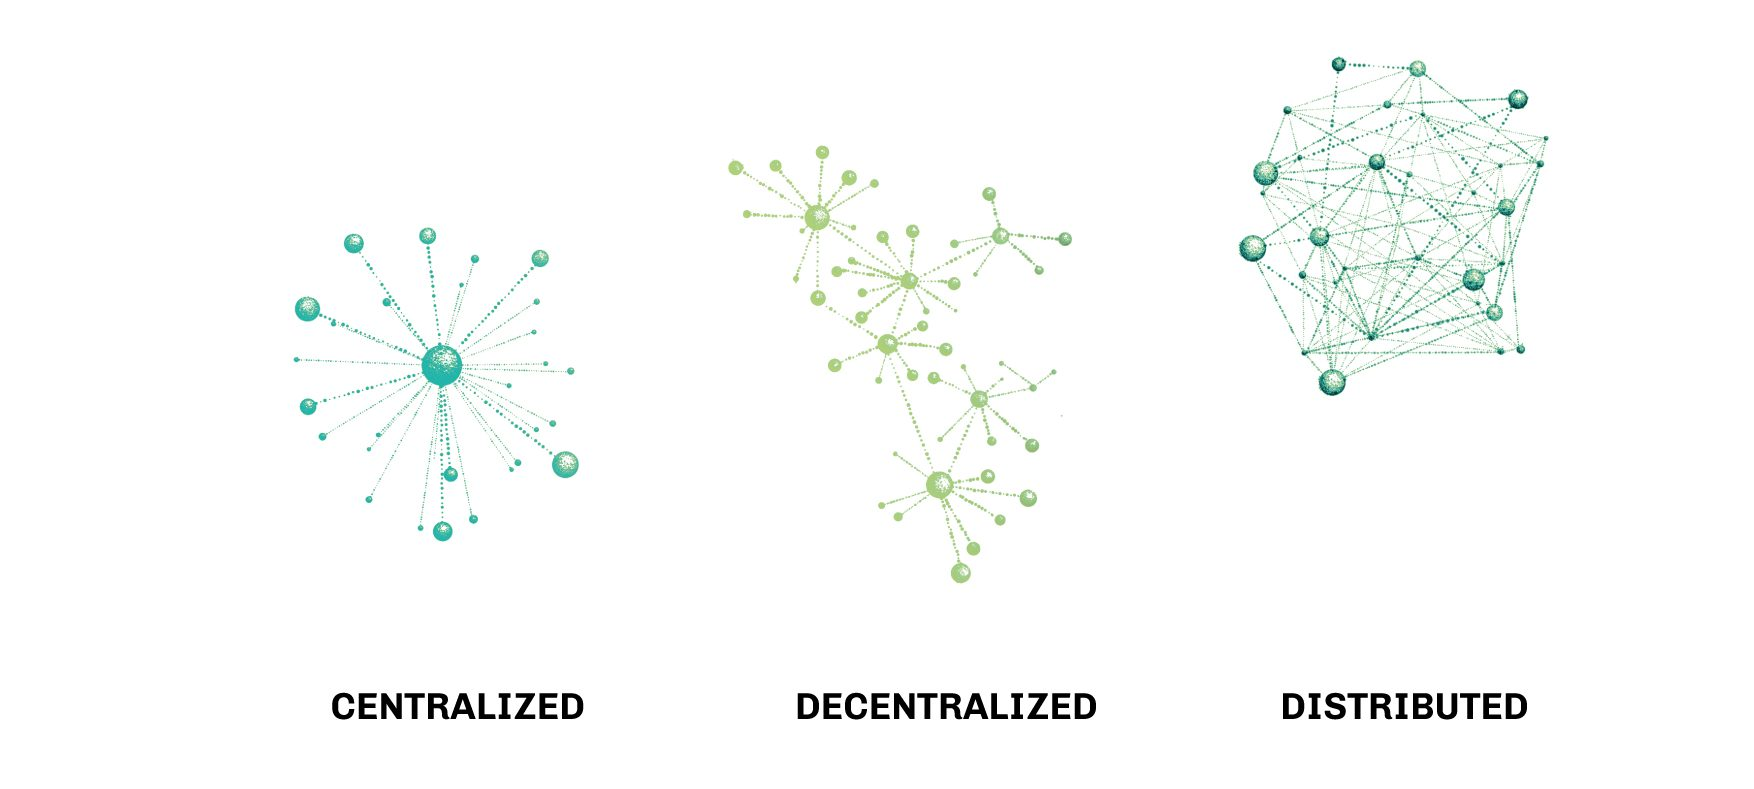 Centralized, decentralized and distributed relationships